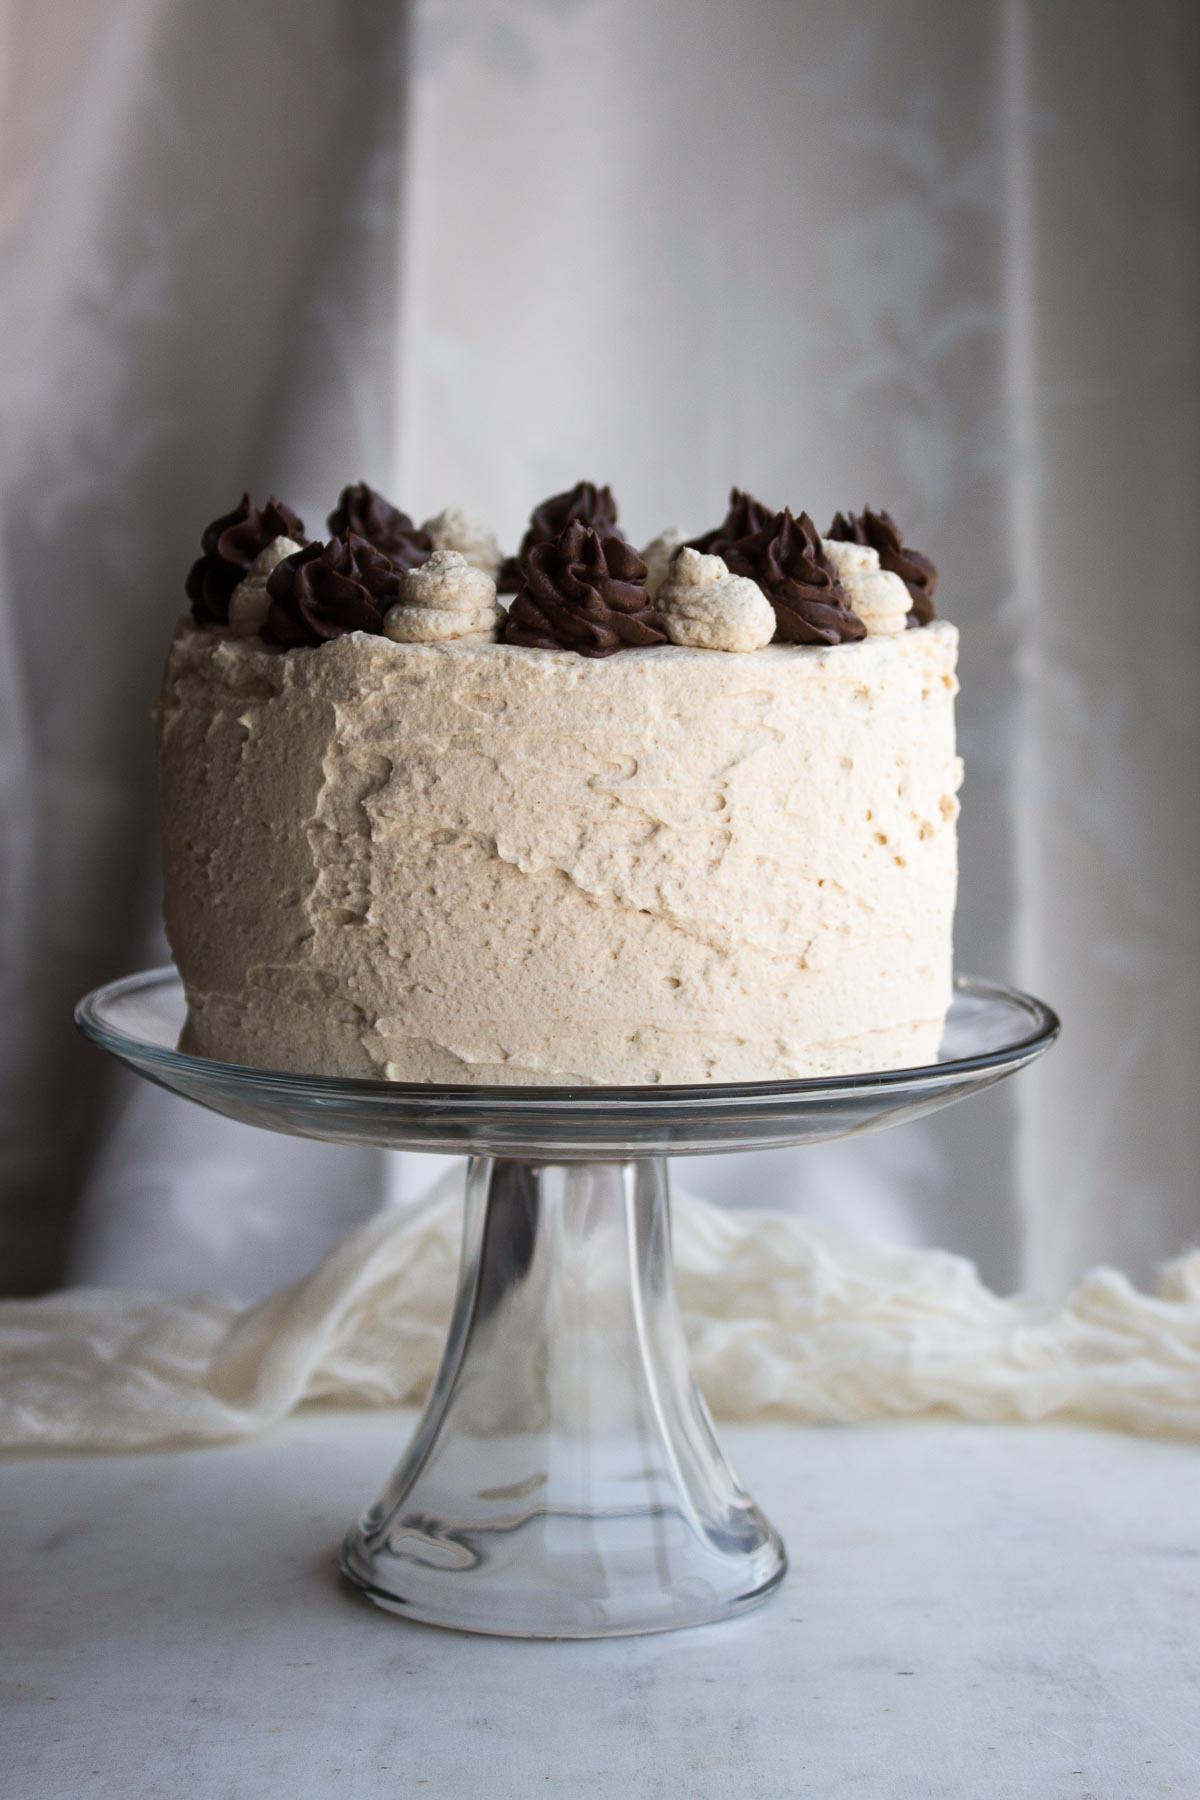 Super moist low carb peanut butter chocolate cake, filled with rich chocolate pastry cream & frosted with peanut butter whipped cream. low carb, gluten-free, keto, thm-h